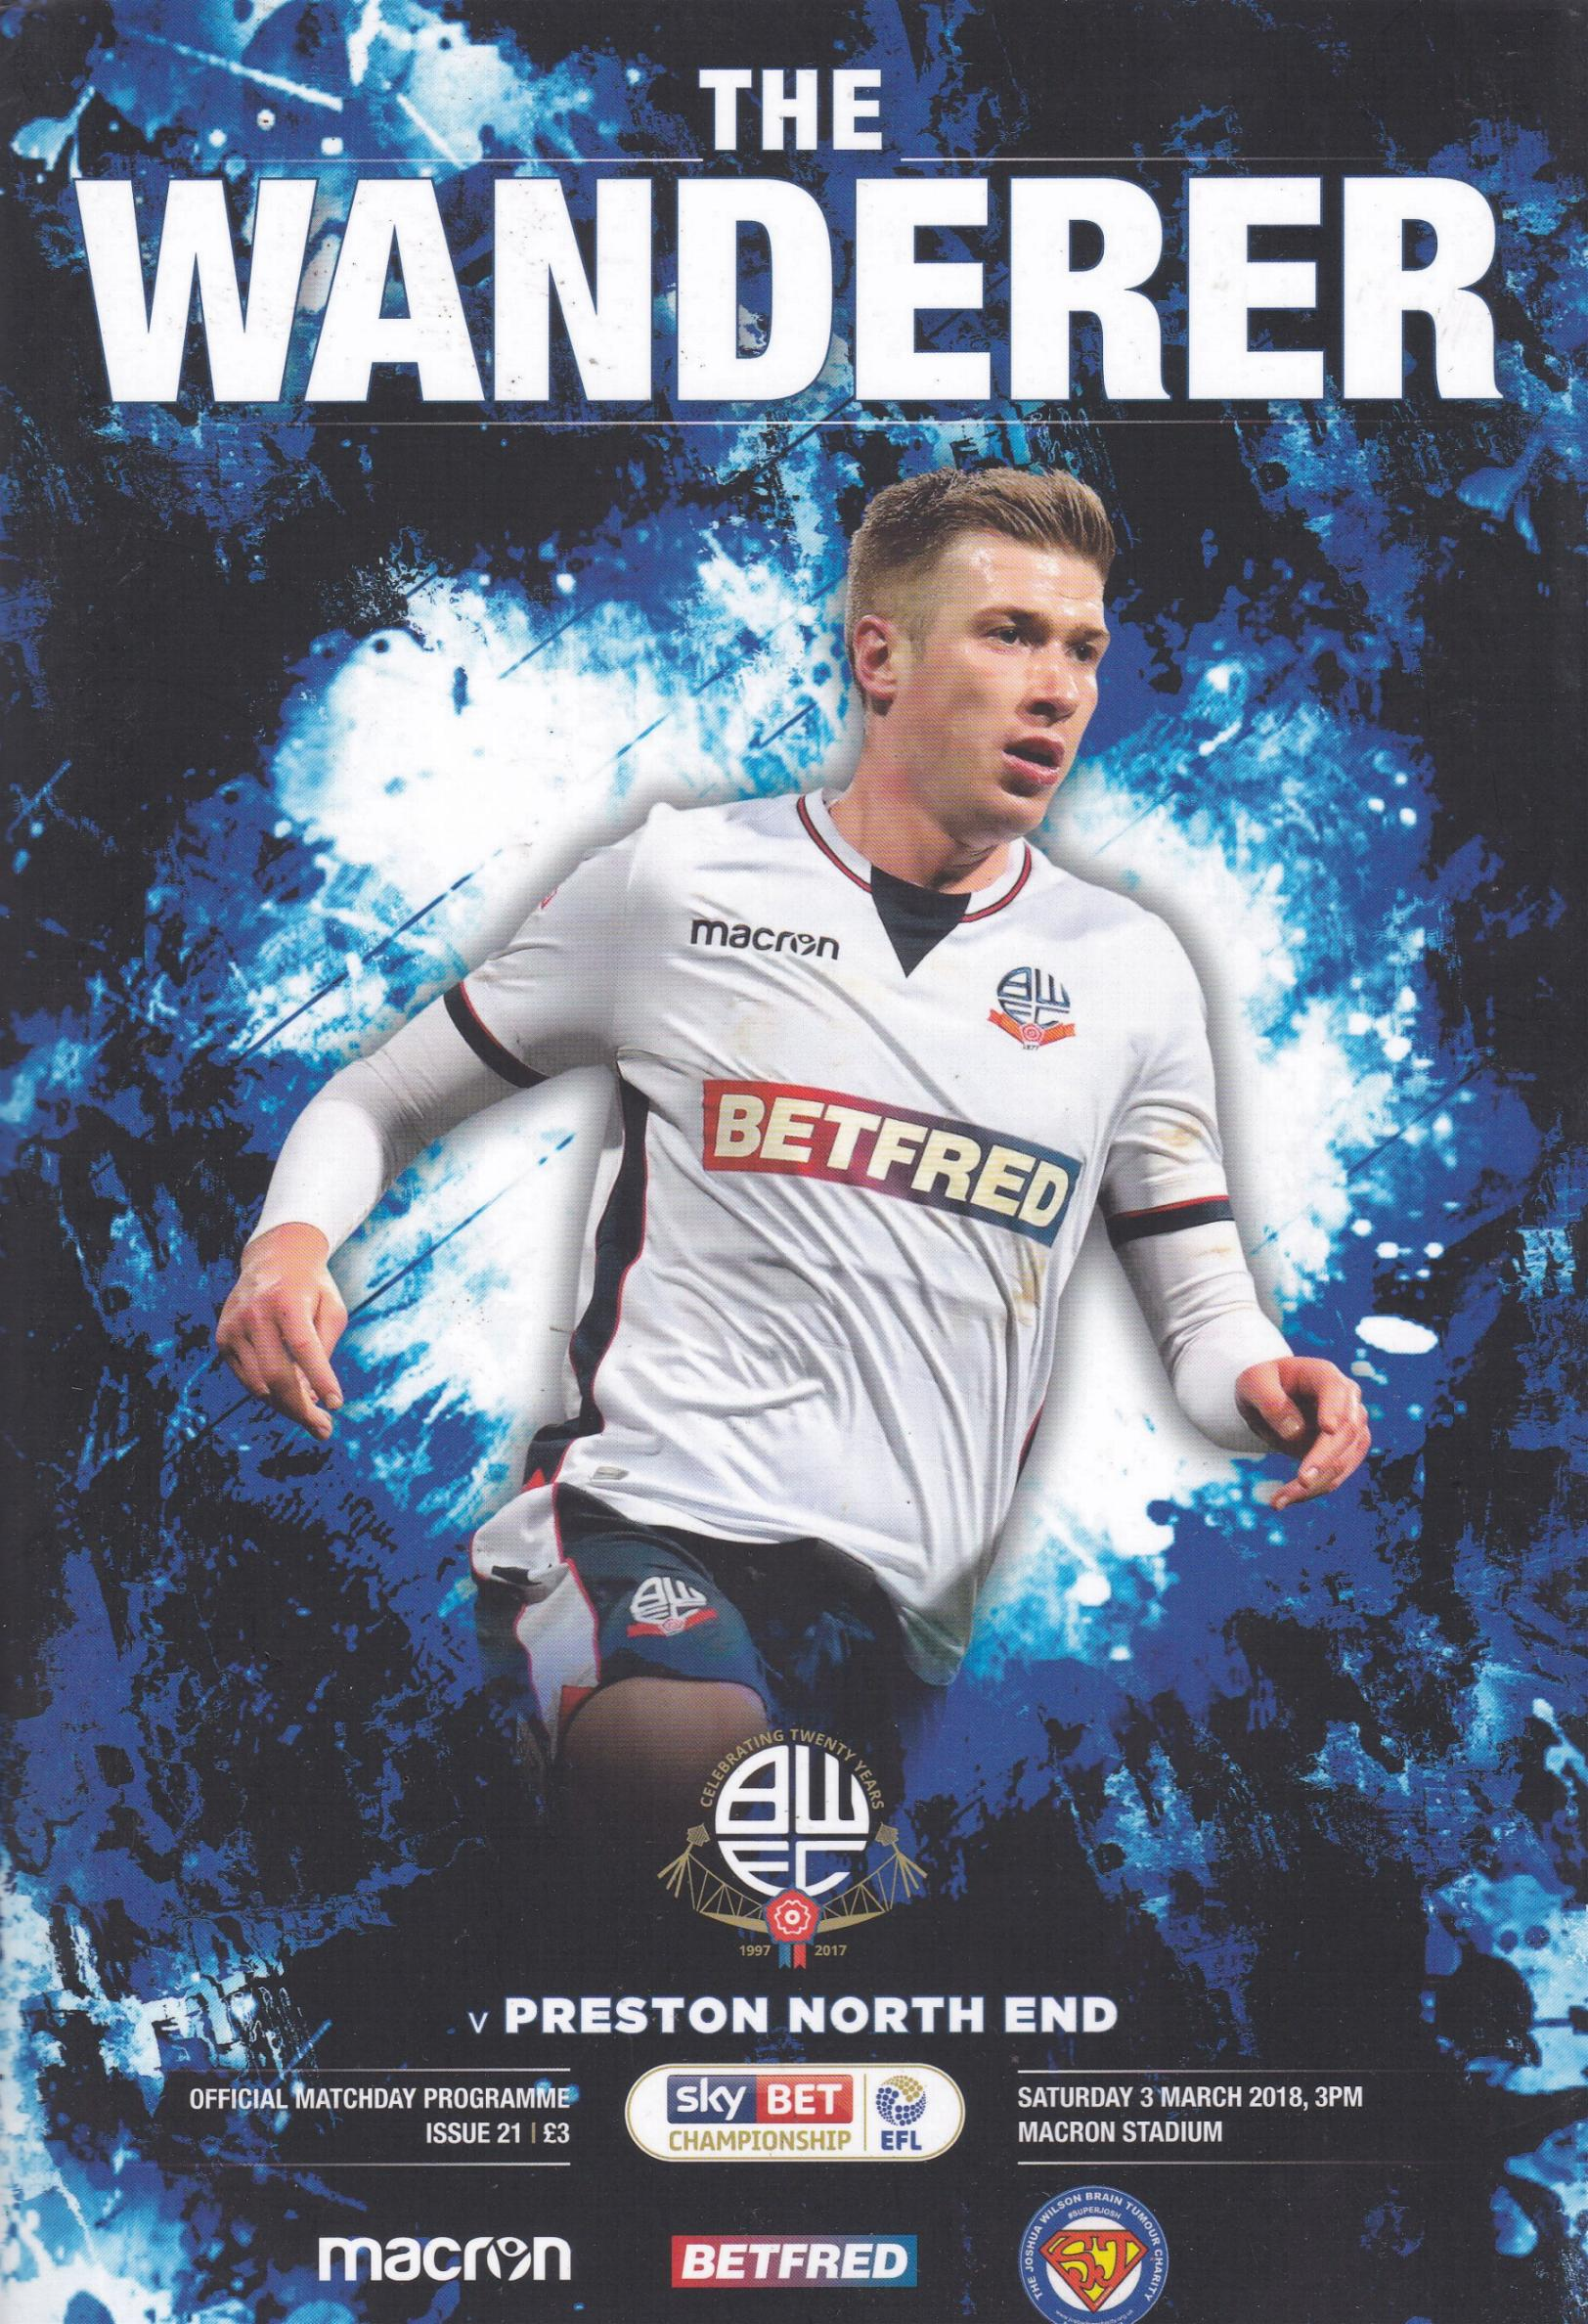 BOLTON WANDERERS v PRESTON NORTH END 2017/18